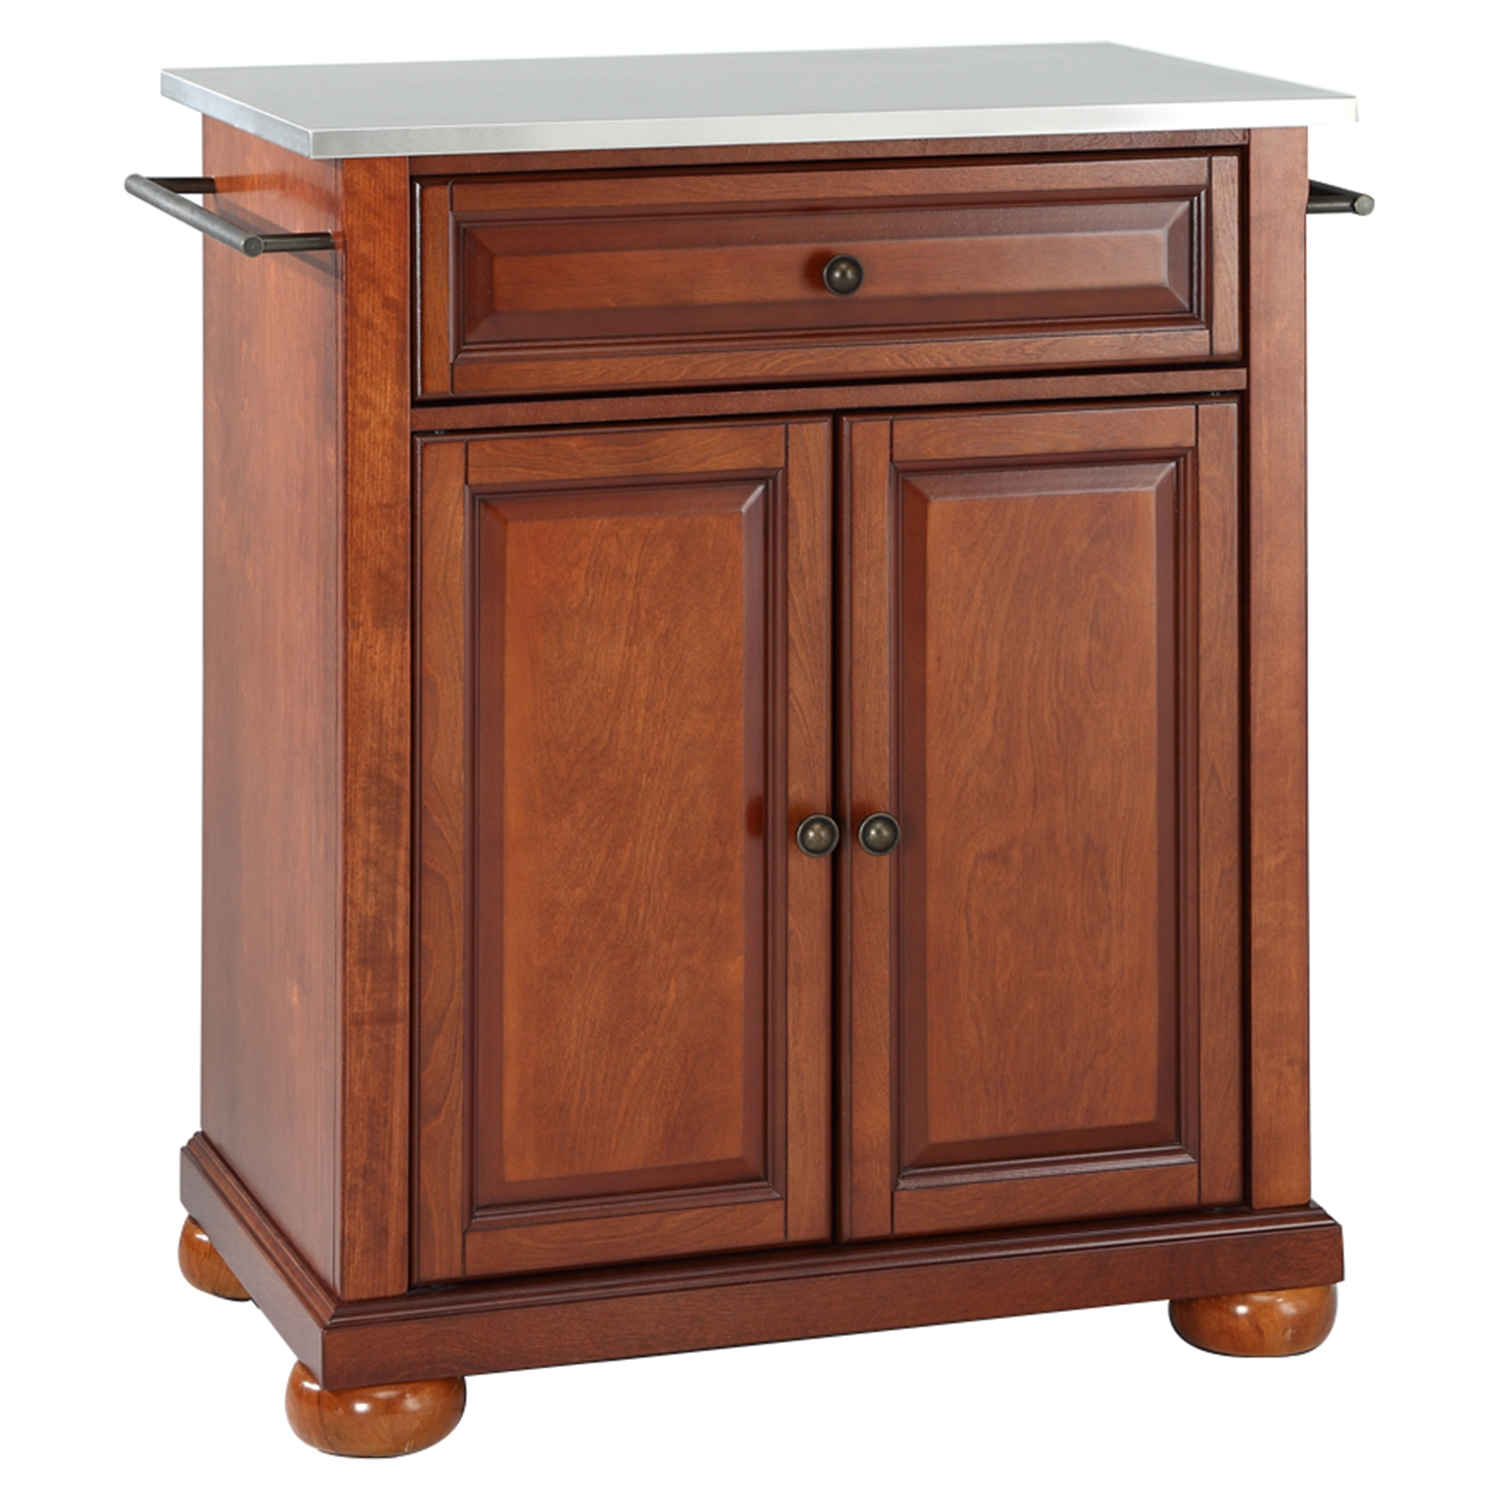 Alexandria Stainless Steel Top Portable Kitchen Island - Classic Cherry - CROS-KF30022ACH